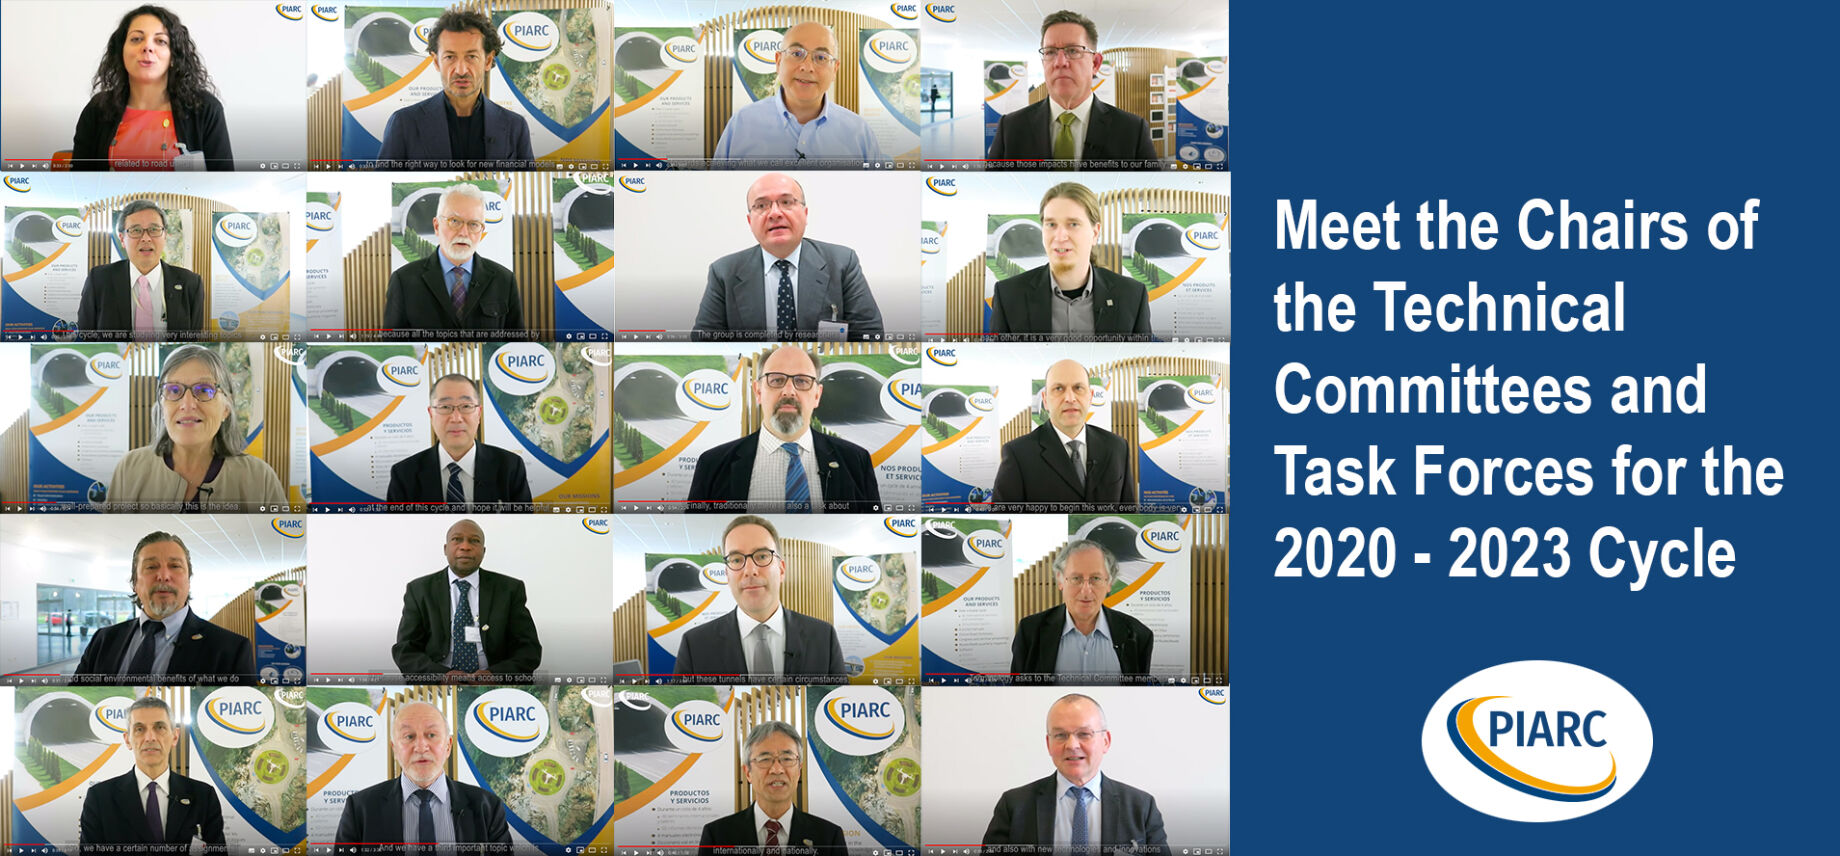 Meet the Chairs of the 22 Technical Committees and Task Forces for the 2020 - 2023 Work Cycle